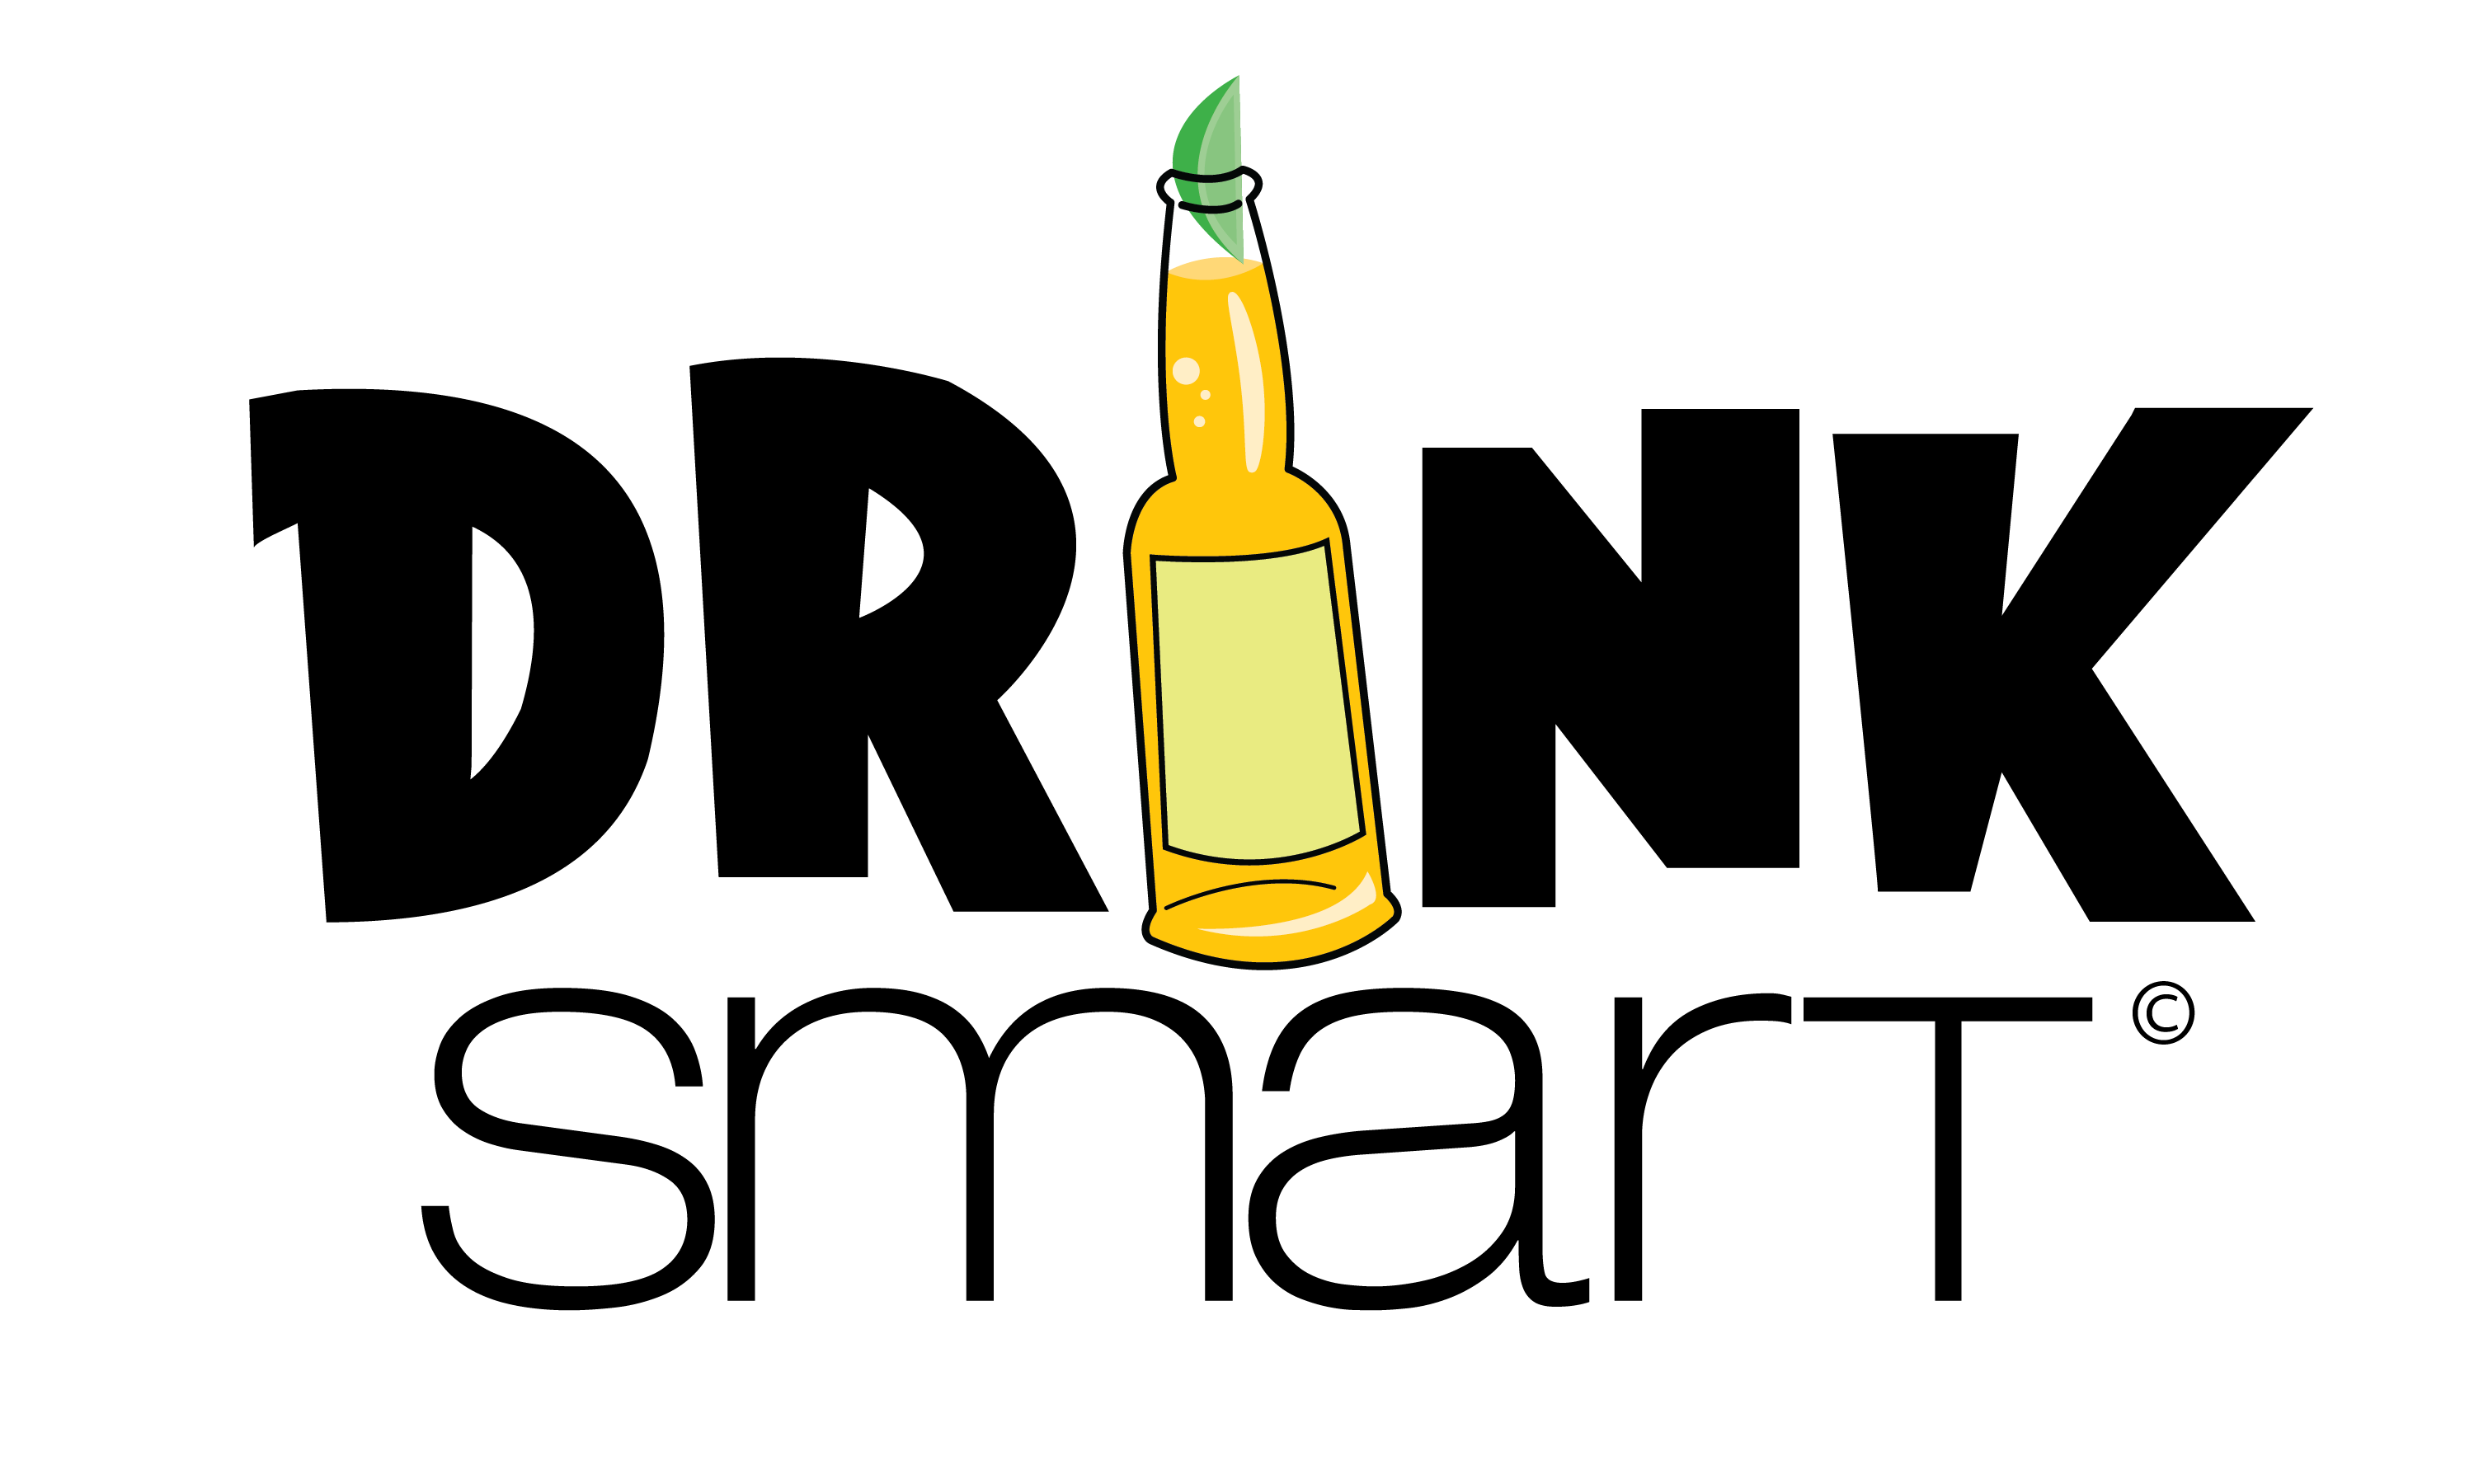 clipart transparent stock How to drinksmart and. Merry clipart drink.